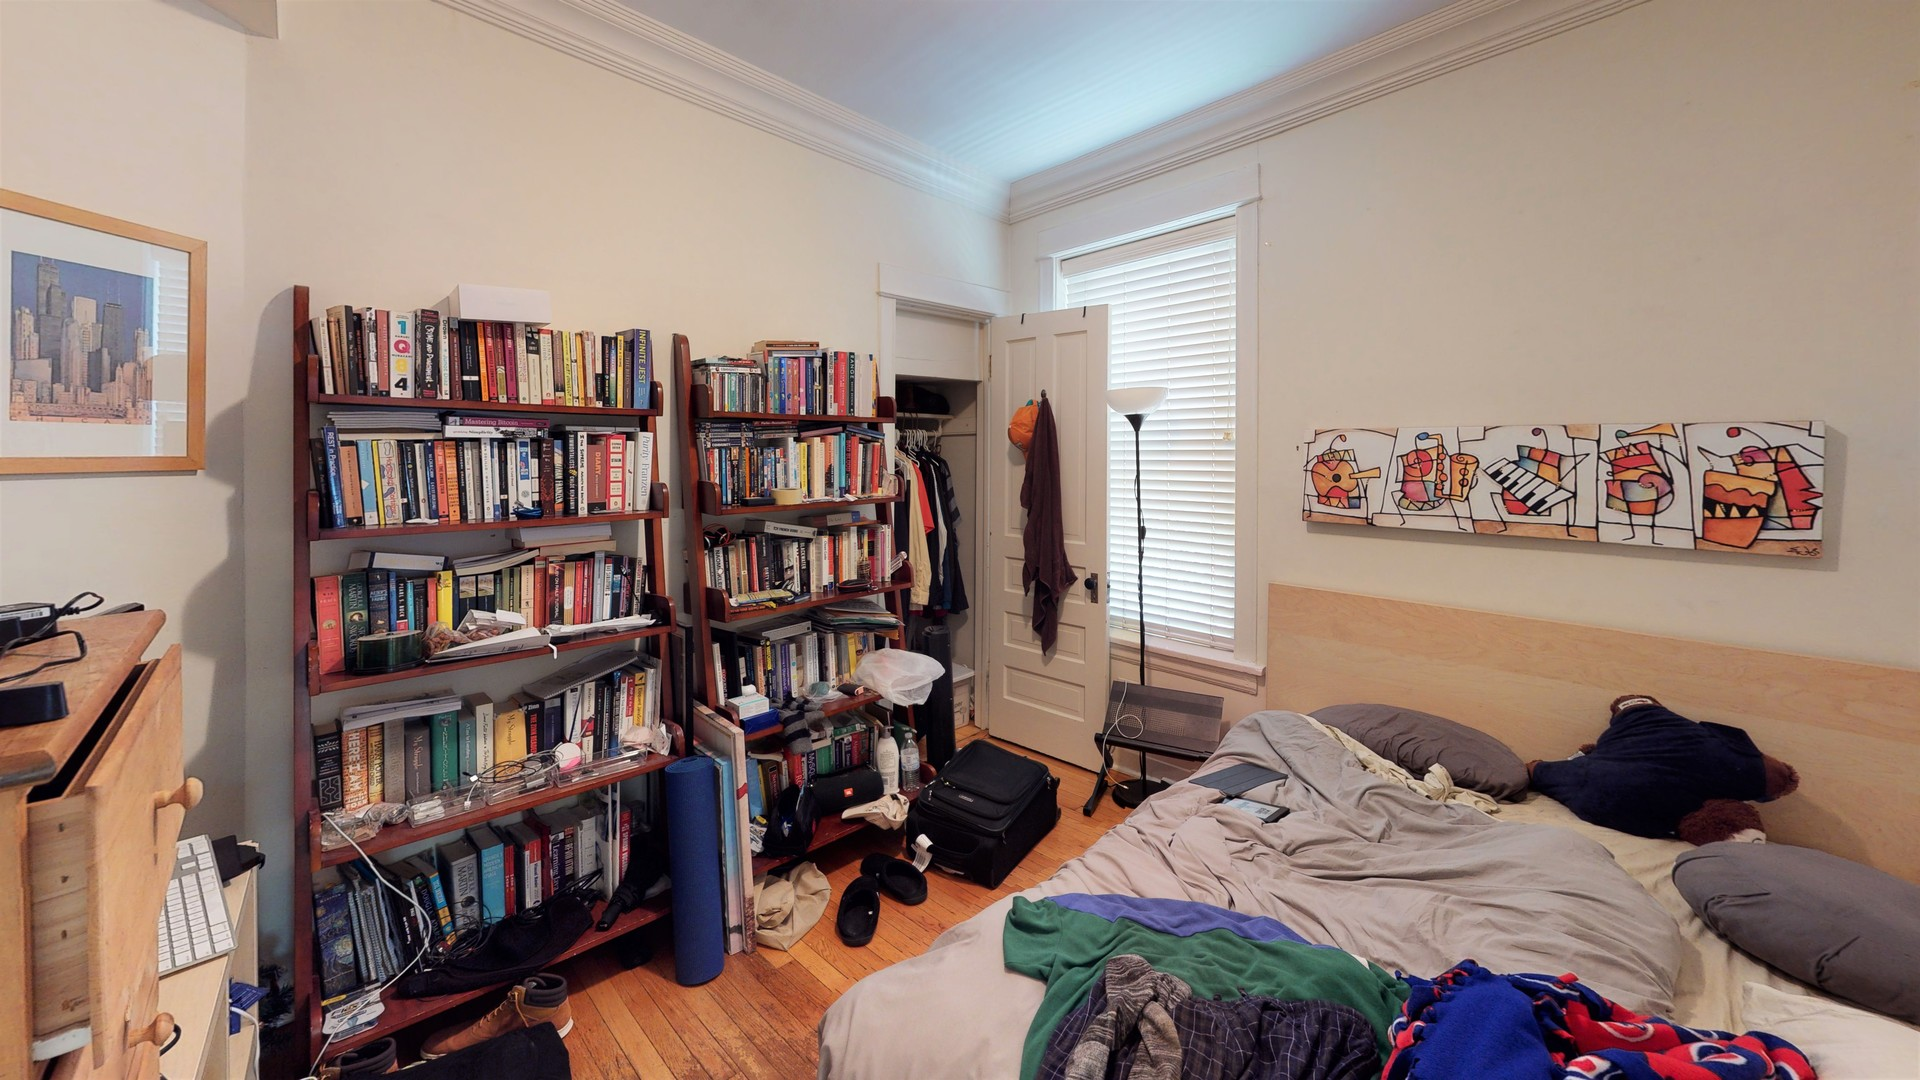 3117 N Orchard St apartments for rent at AptAmigo